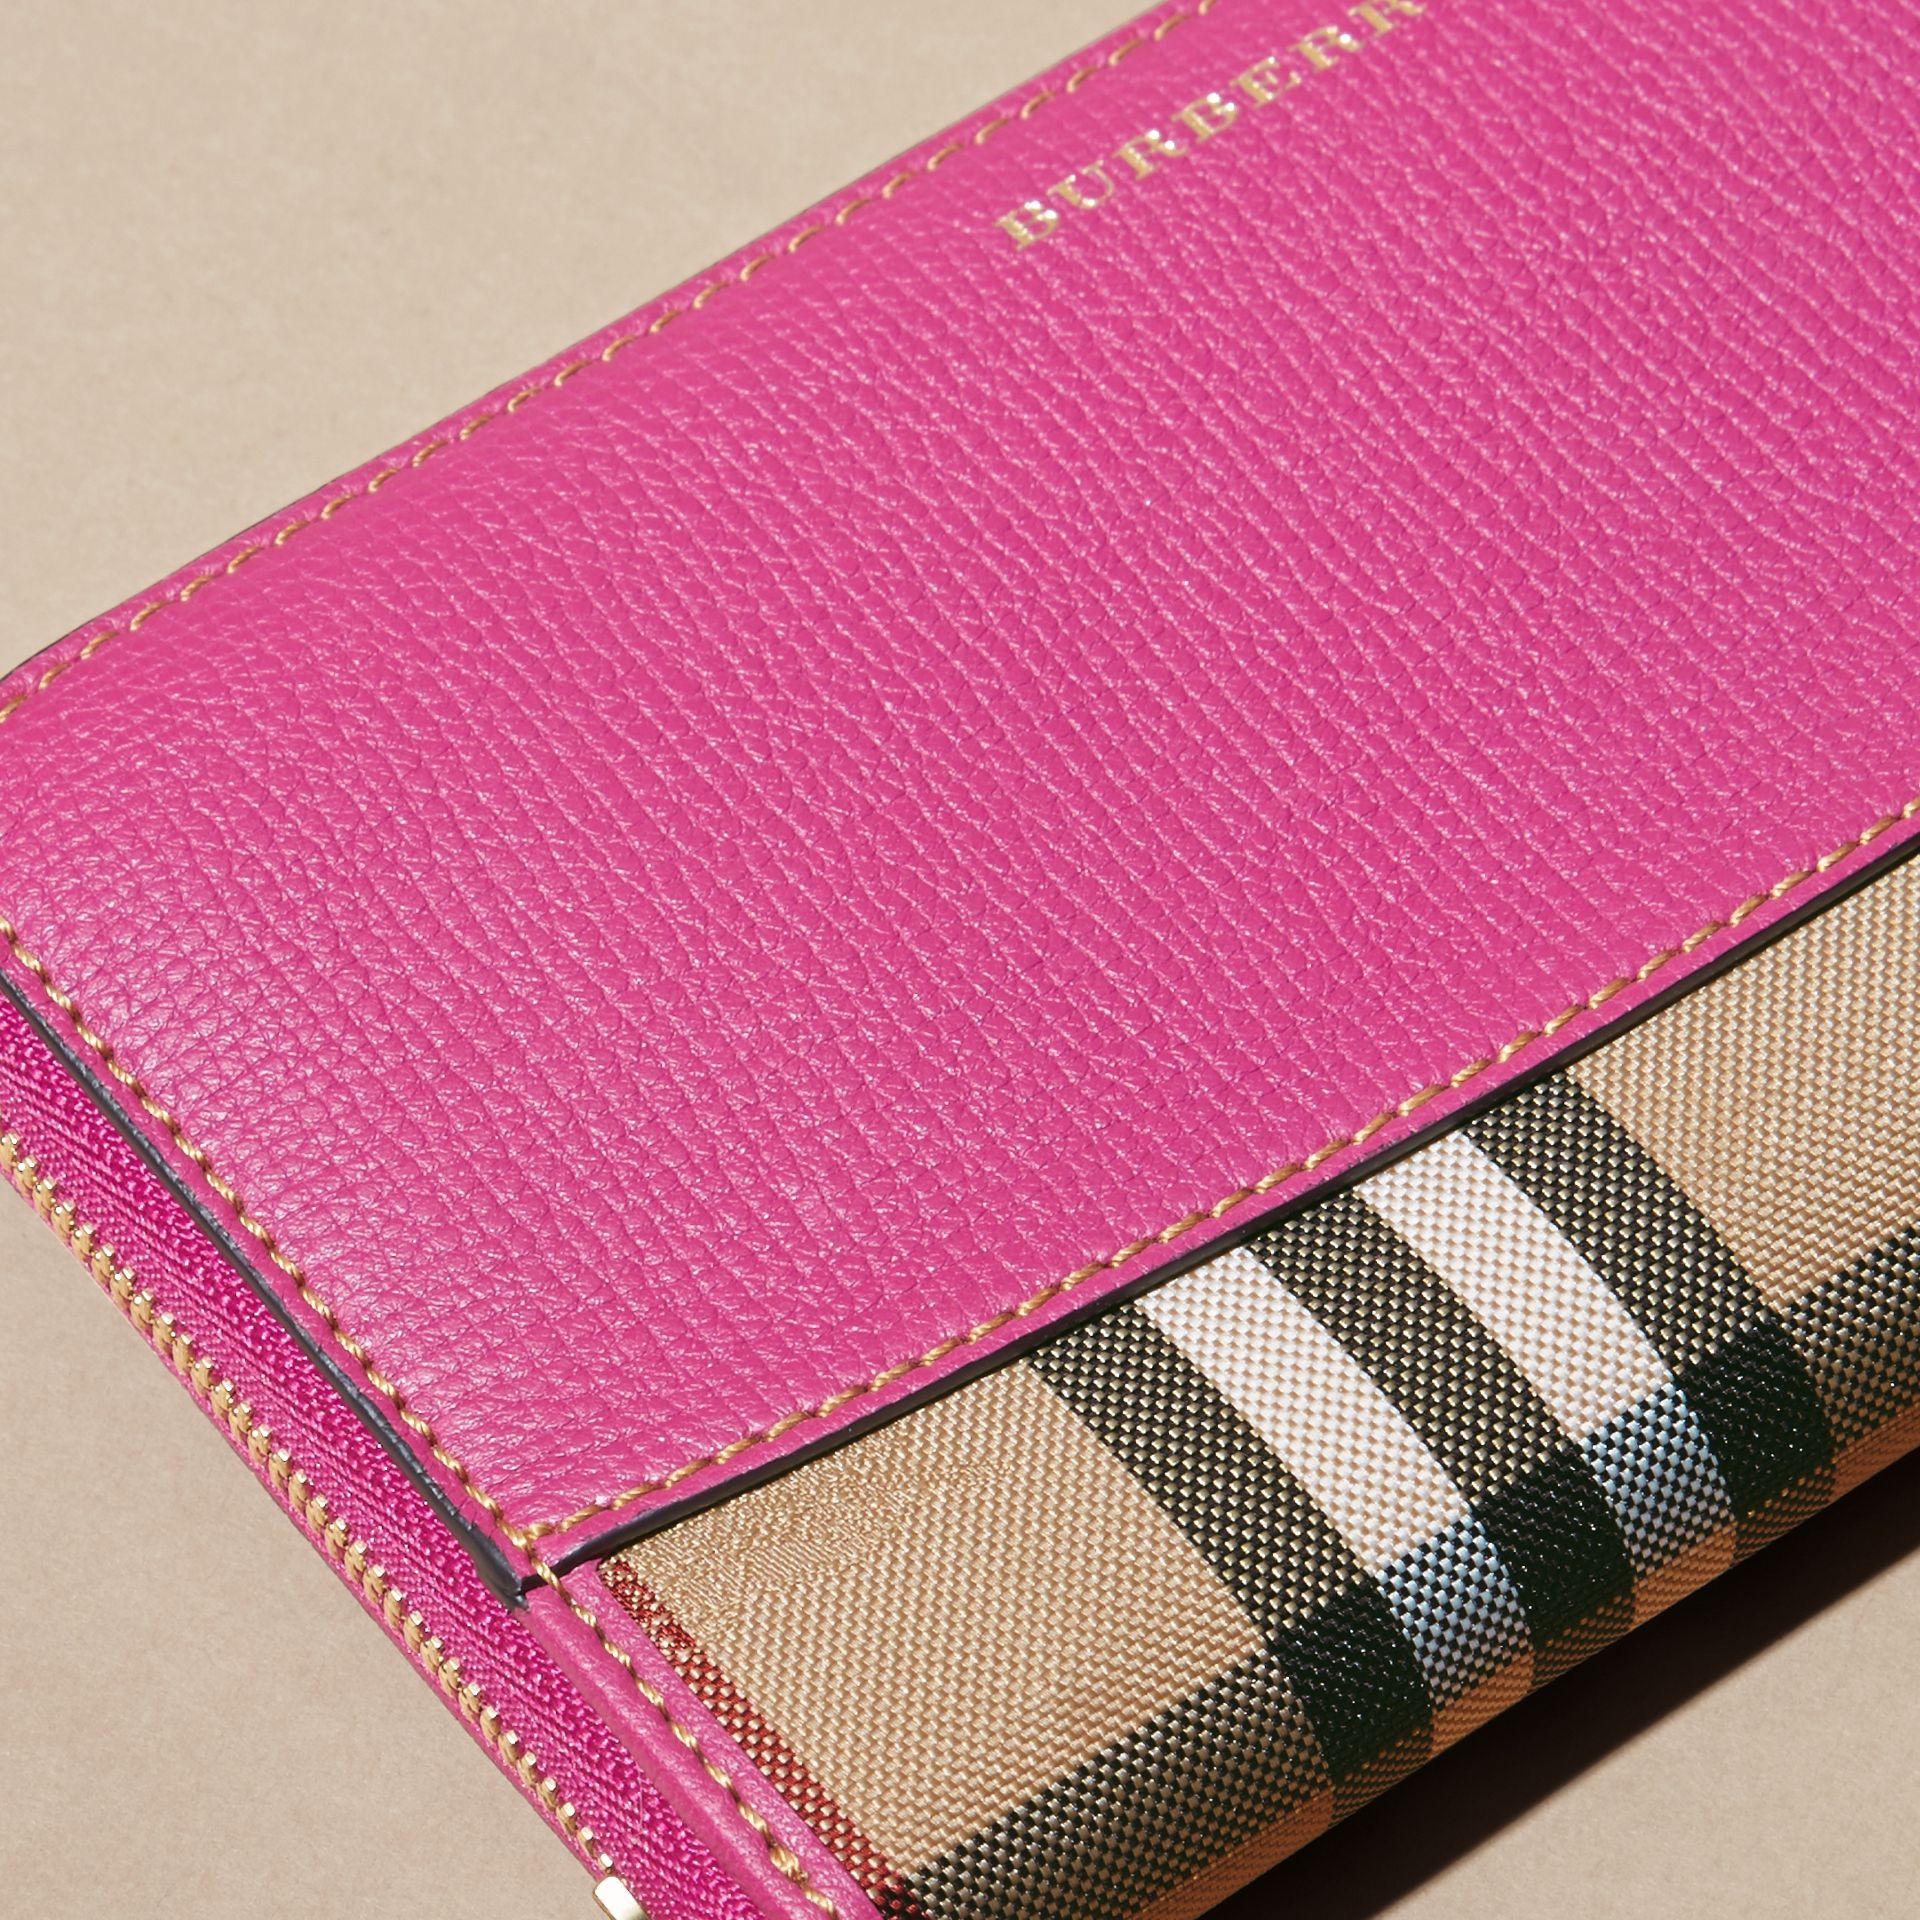 Brilliant fuchsia Horseferry Check and Leather Ziparound Wallet Brilliant Fuchsia - gallery image 2